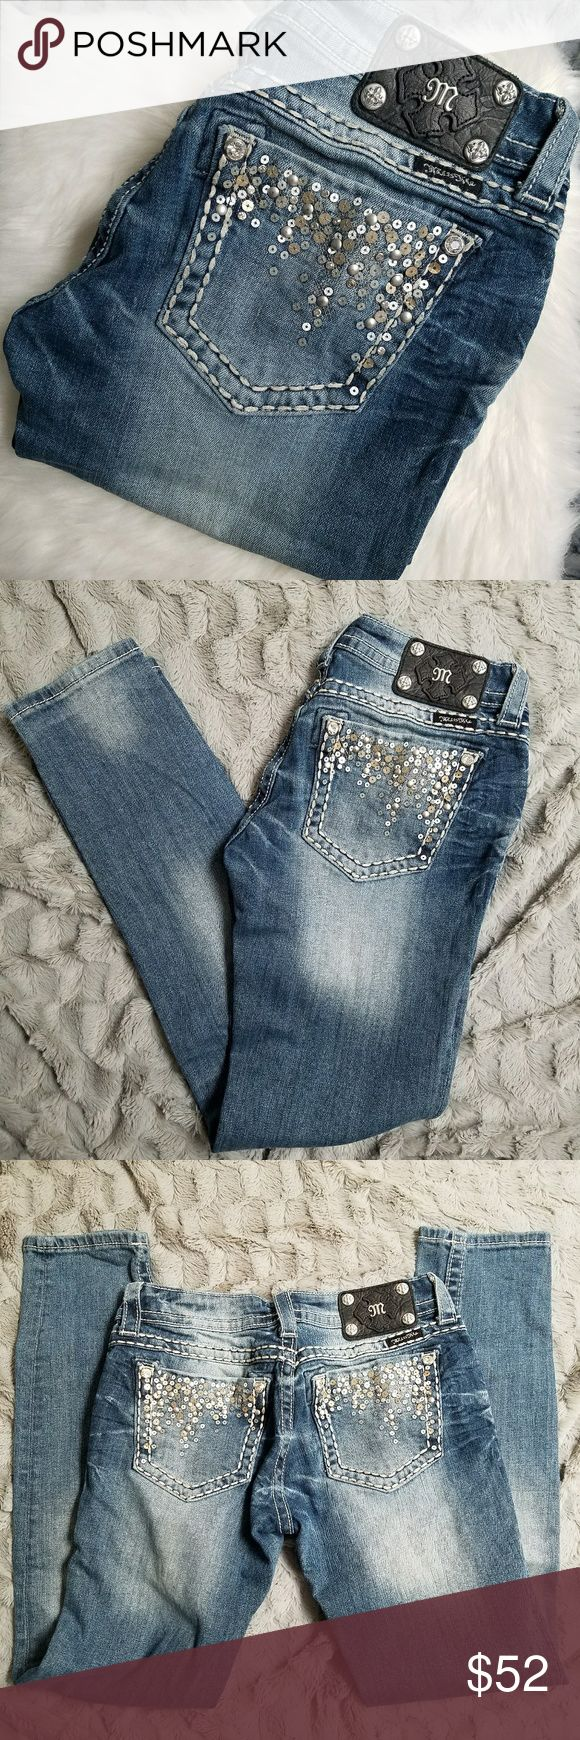 Miss Me Skinny Jeans Size 28 Like new jeans by Miss Me. All gems, buttons, and sequins intact. Size 28. Inseam is 31 inches, waist is 15 inches and rise is 8 inches. Miss Me Jeans Skinny